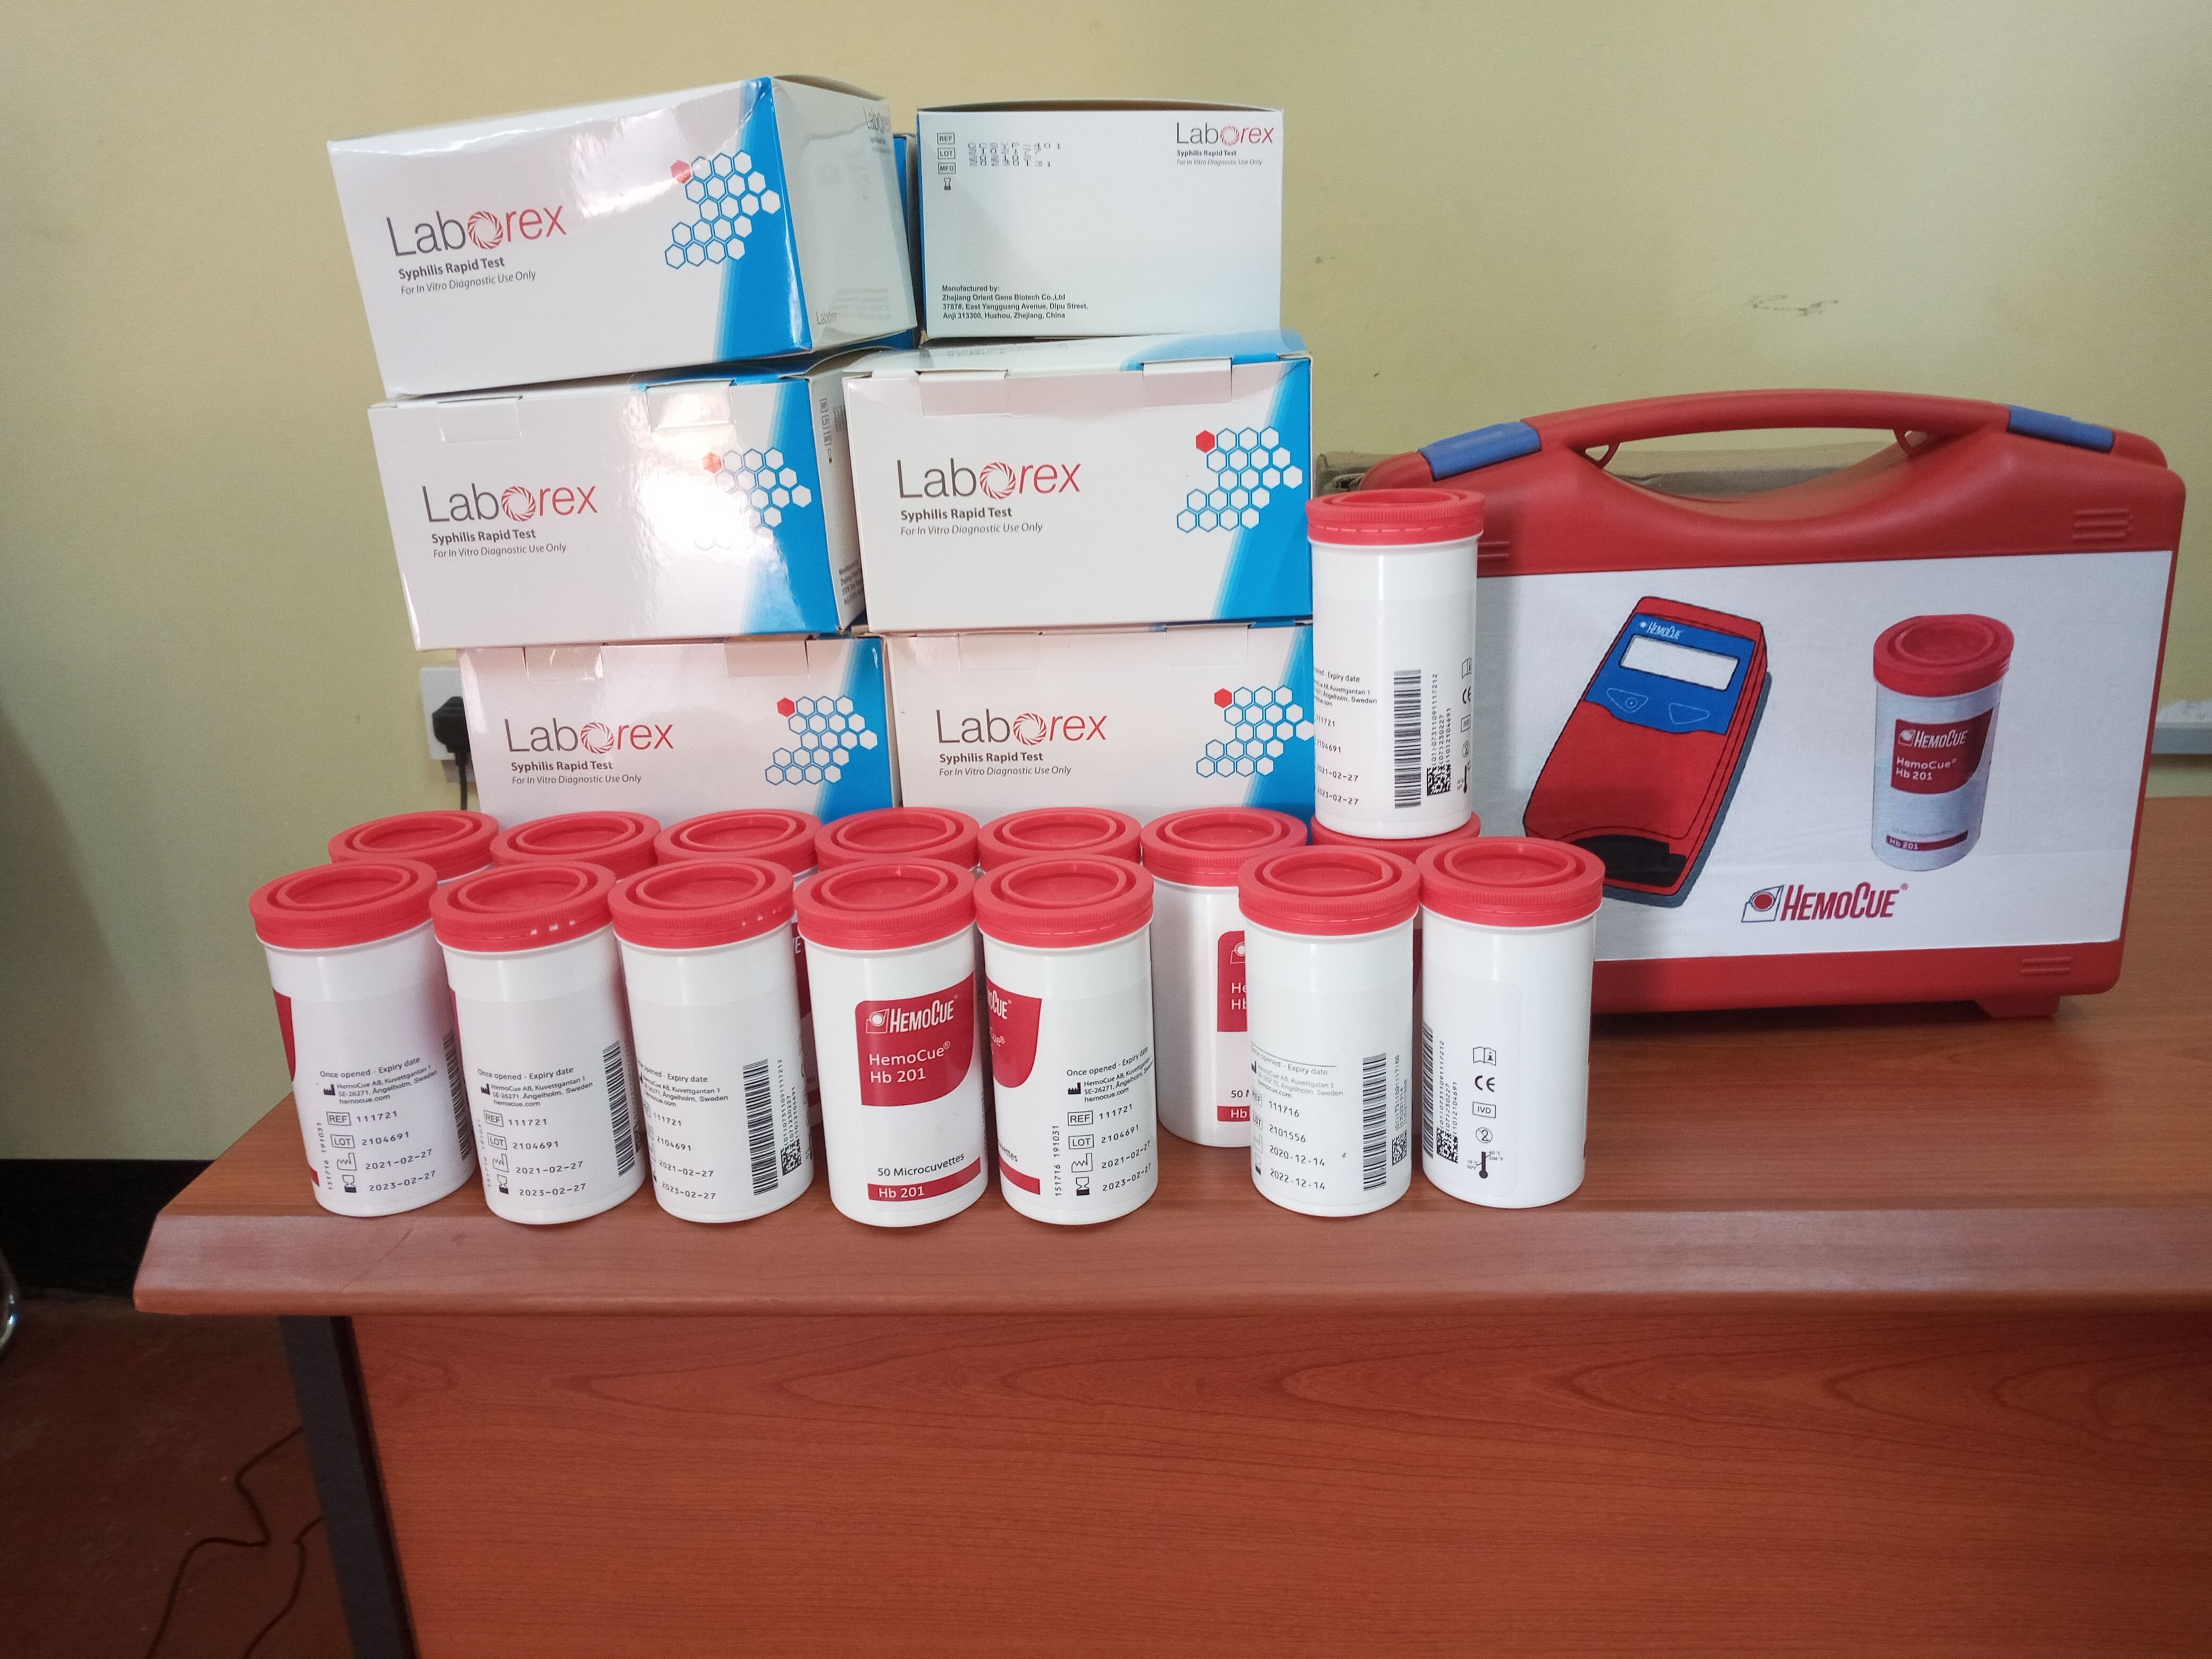 6.34 - Project 2021 - HB intervention - Syphilis kits, HB strips and HB machine.jpg